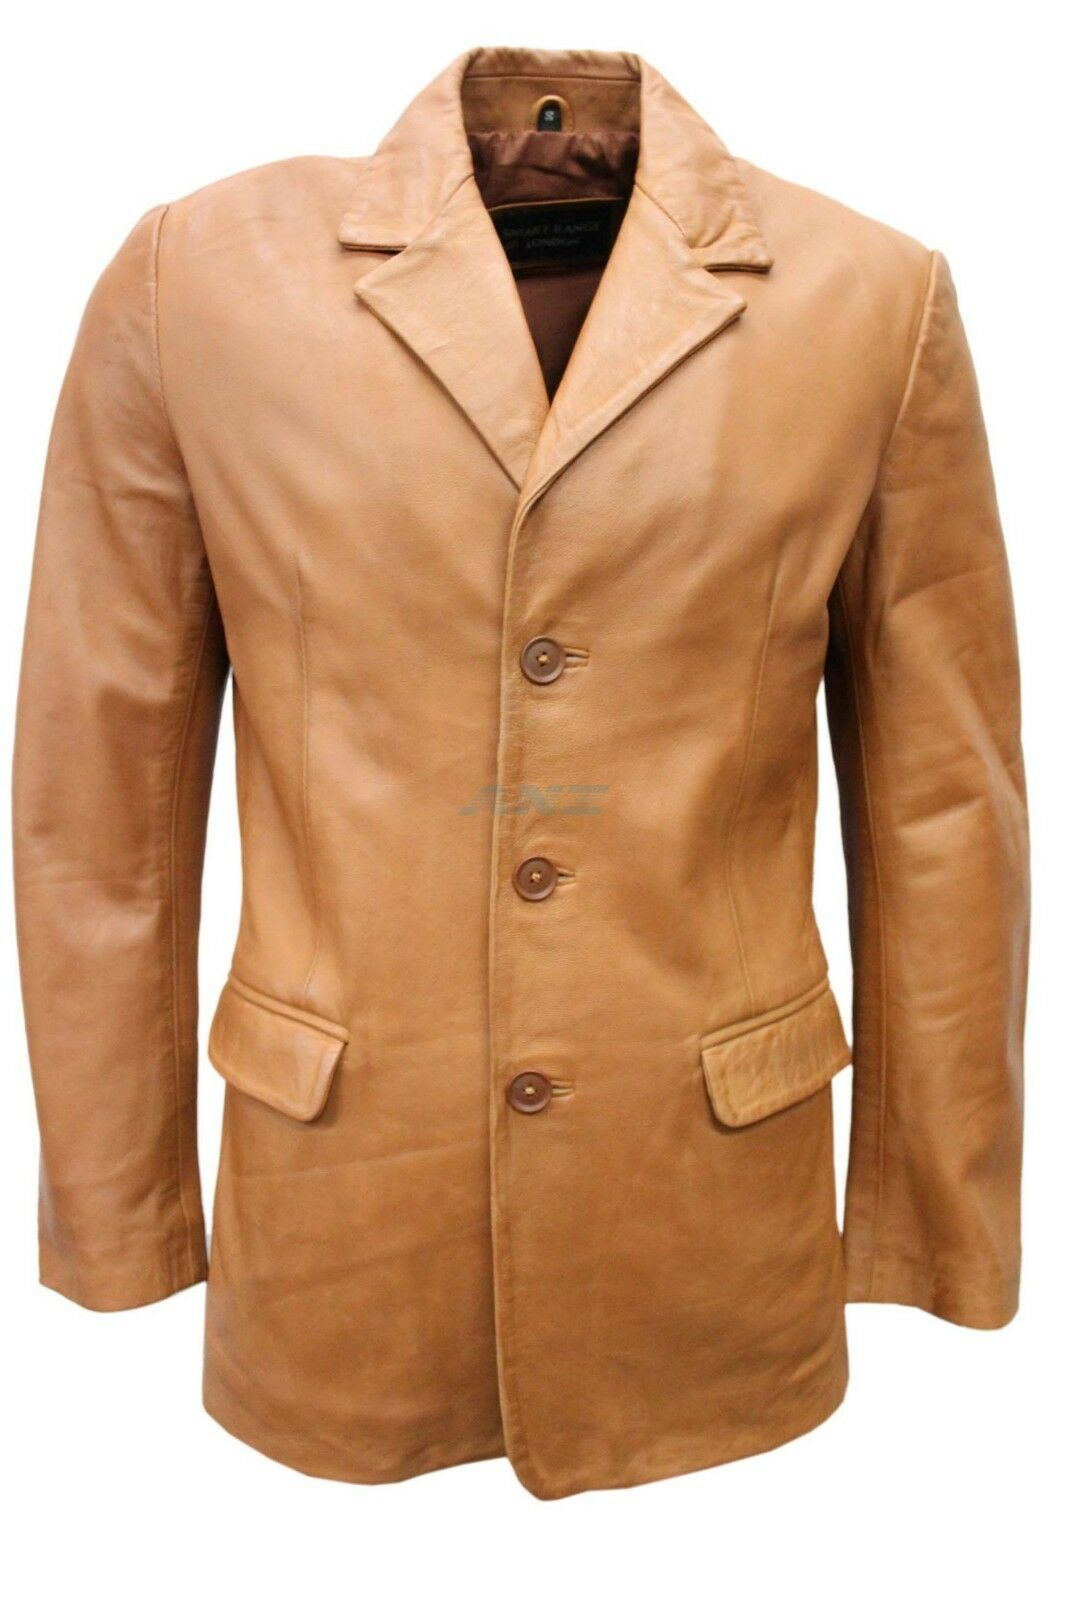 Slim Jim 2 Tan Napa Stylish Classic Soft Italian Soft Lambskin Leather Blazer